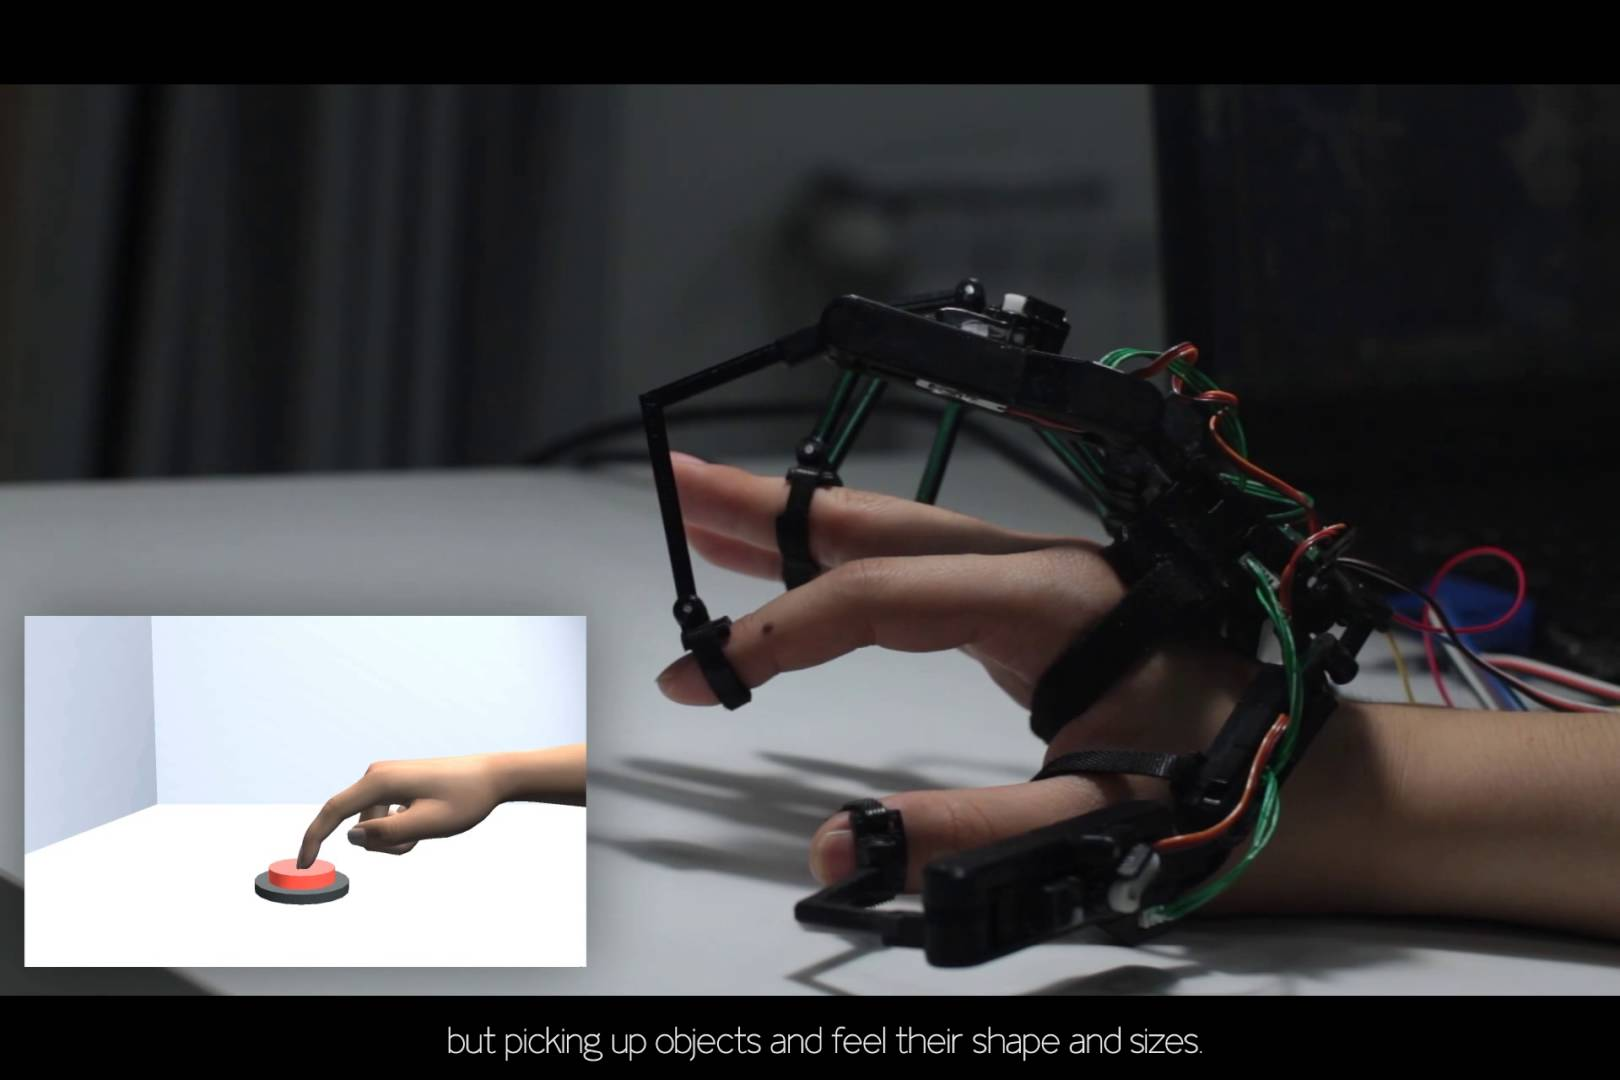 news finger devices users touch objects virtual reality